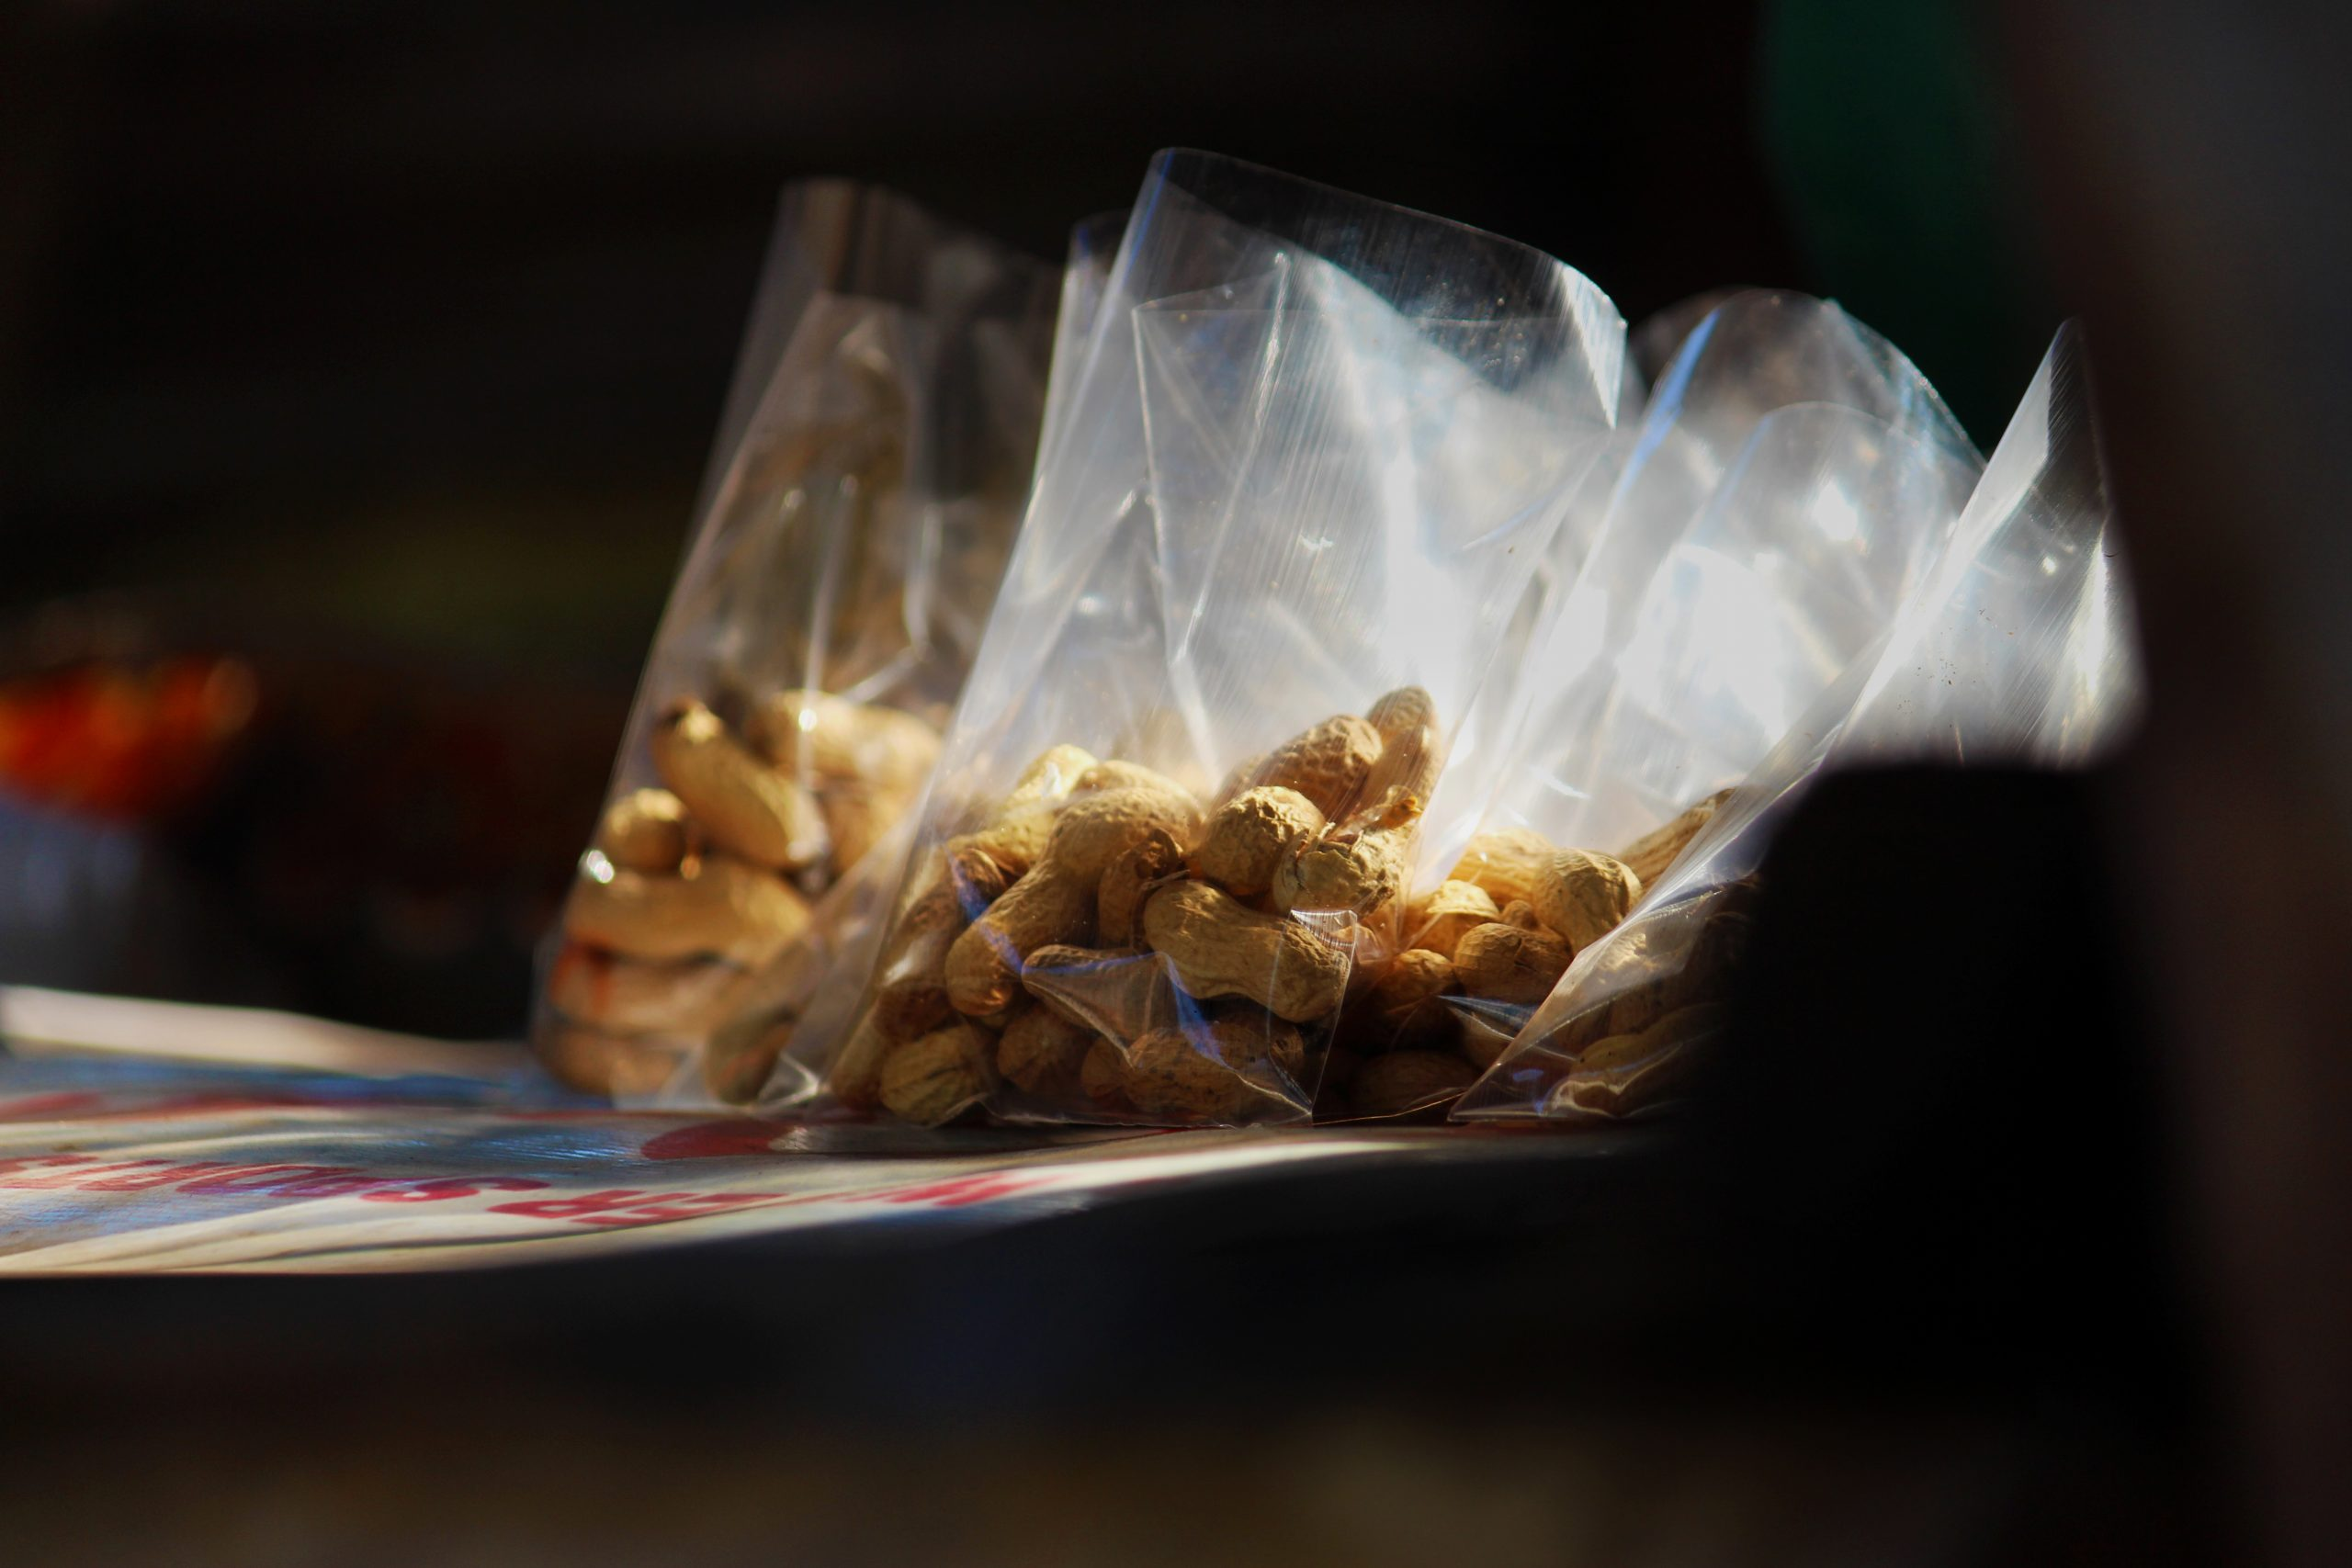 Roasted ground nuts – A pack of goodness